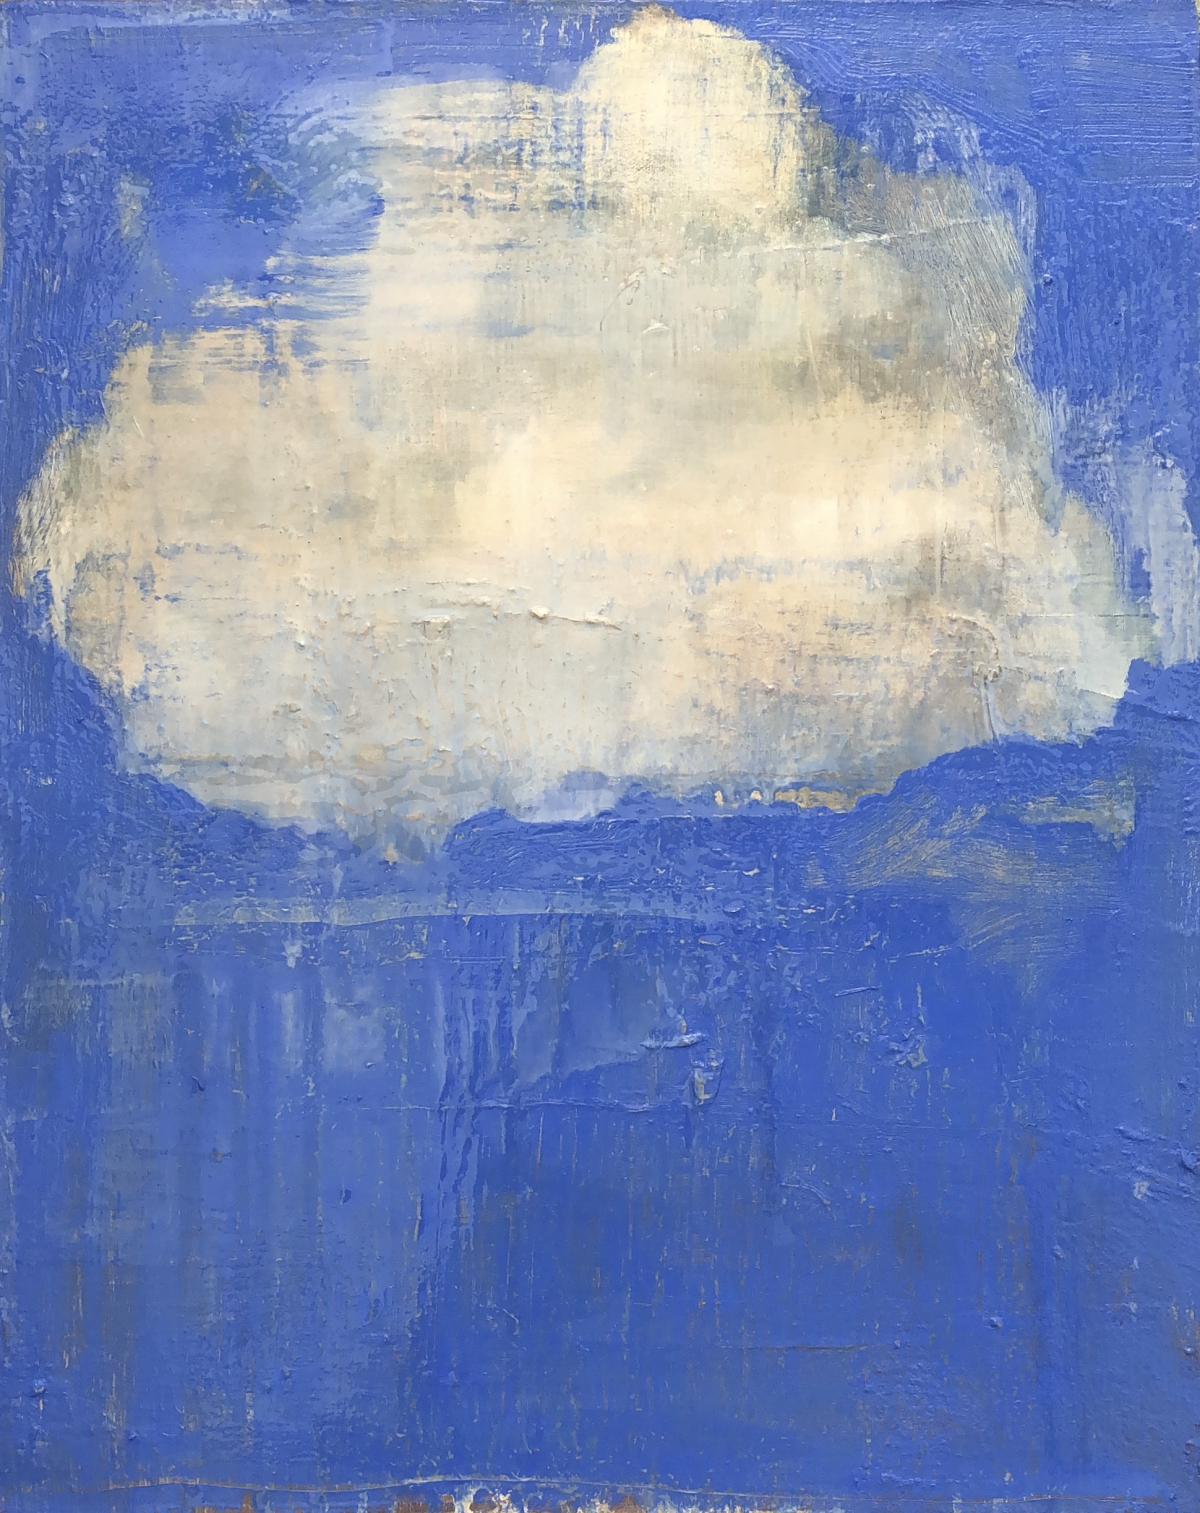 White fluffy cloud against a blue background